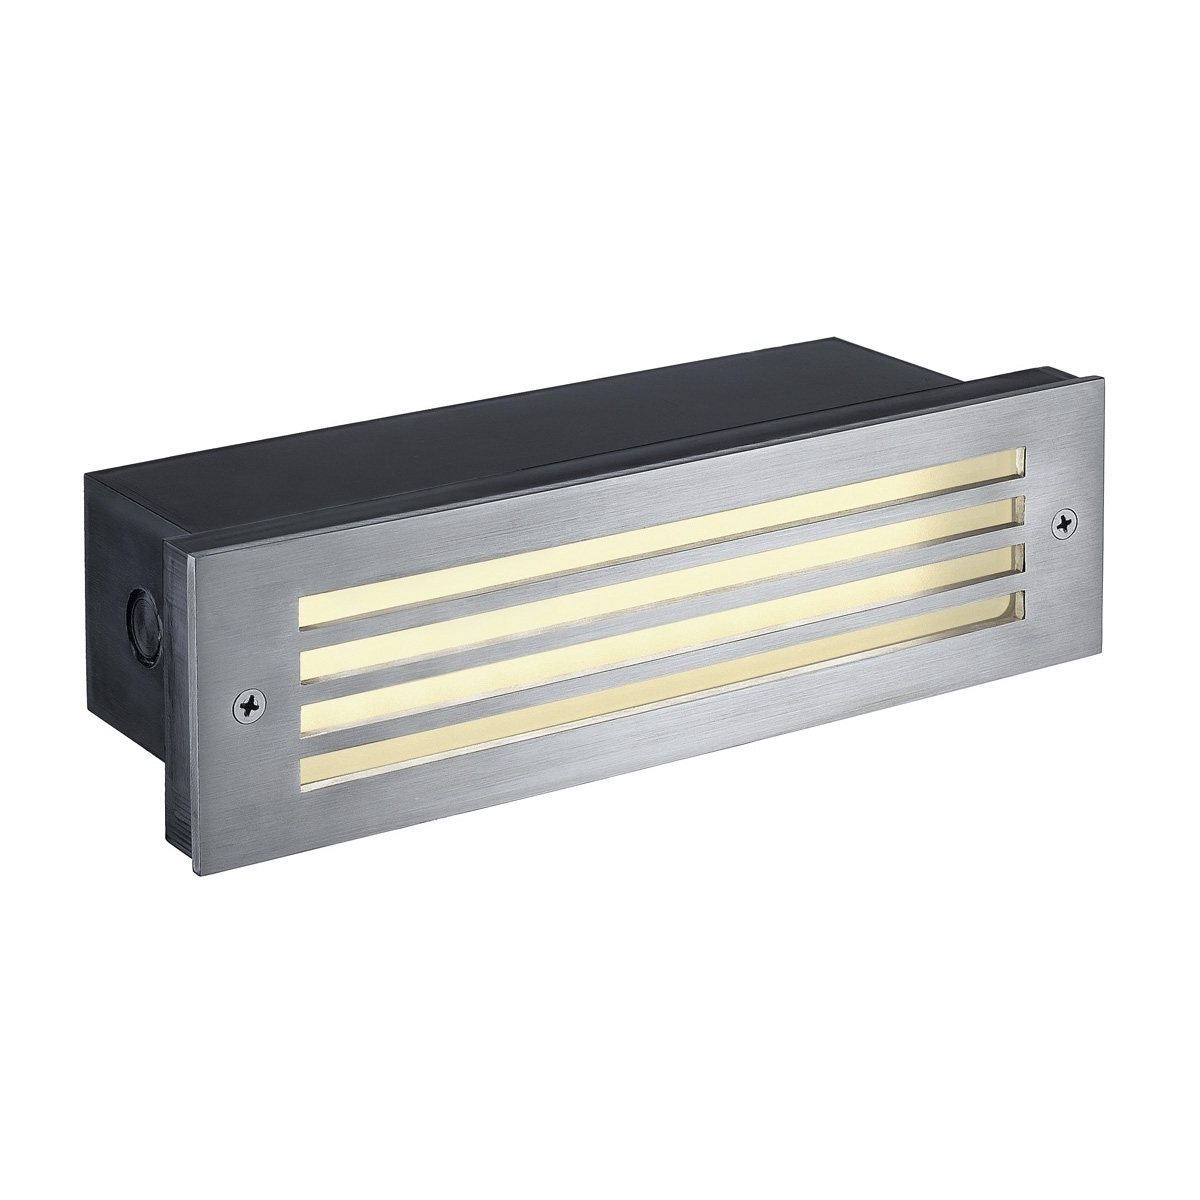 Brick Mesh, Outdoor Recessed Wall Light, Led, 3000K, Ip54, Stainless Pertaining To Recessed Outdoor Wall Lighting (#4 of 15)